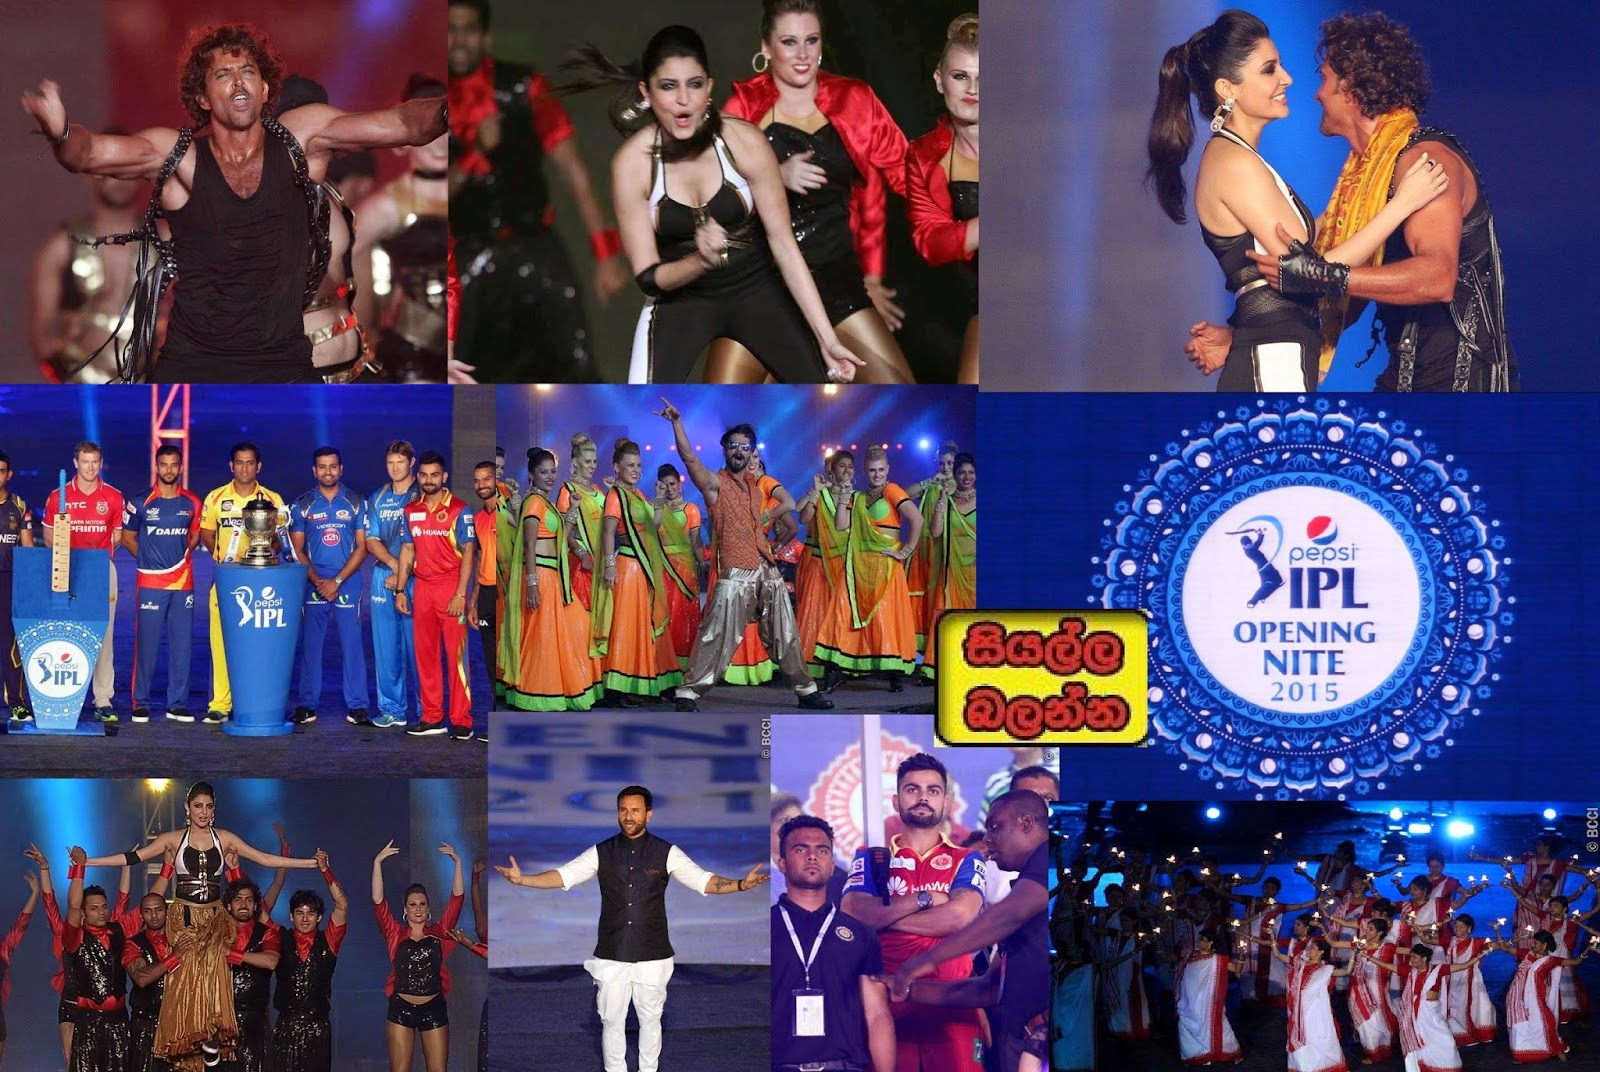 http://picture.gossiplankahotnews.com/2015/04/ipl-2015-opening-ceremony.html